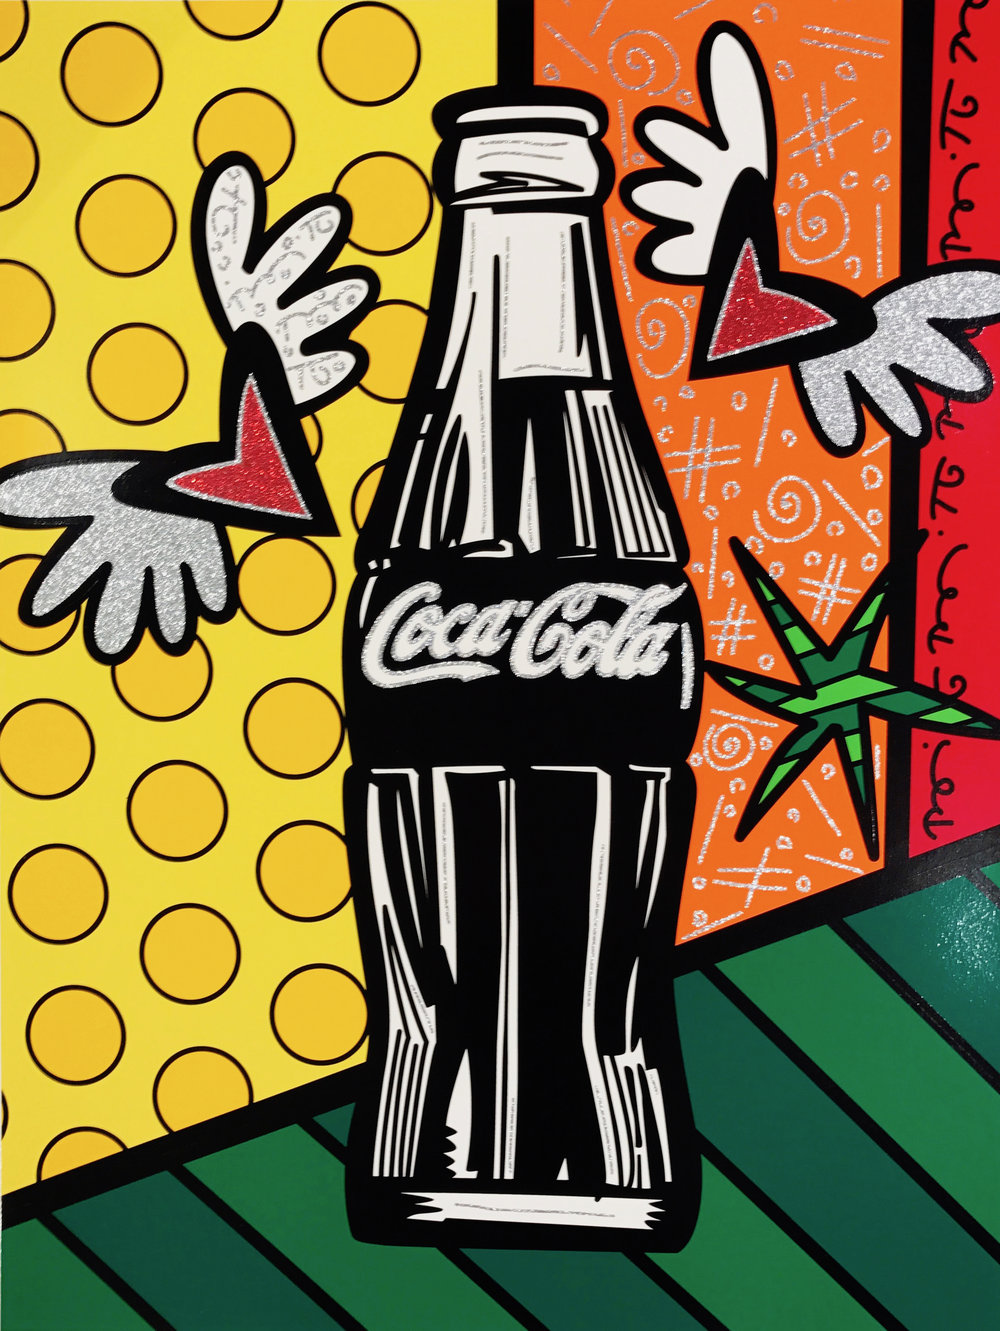 """Coca-Cola V - Happiness""  Serigraph, Limited edition, No. 10 of 100  101.6 x 76.2 cm  2016"